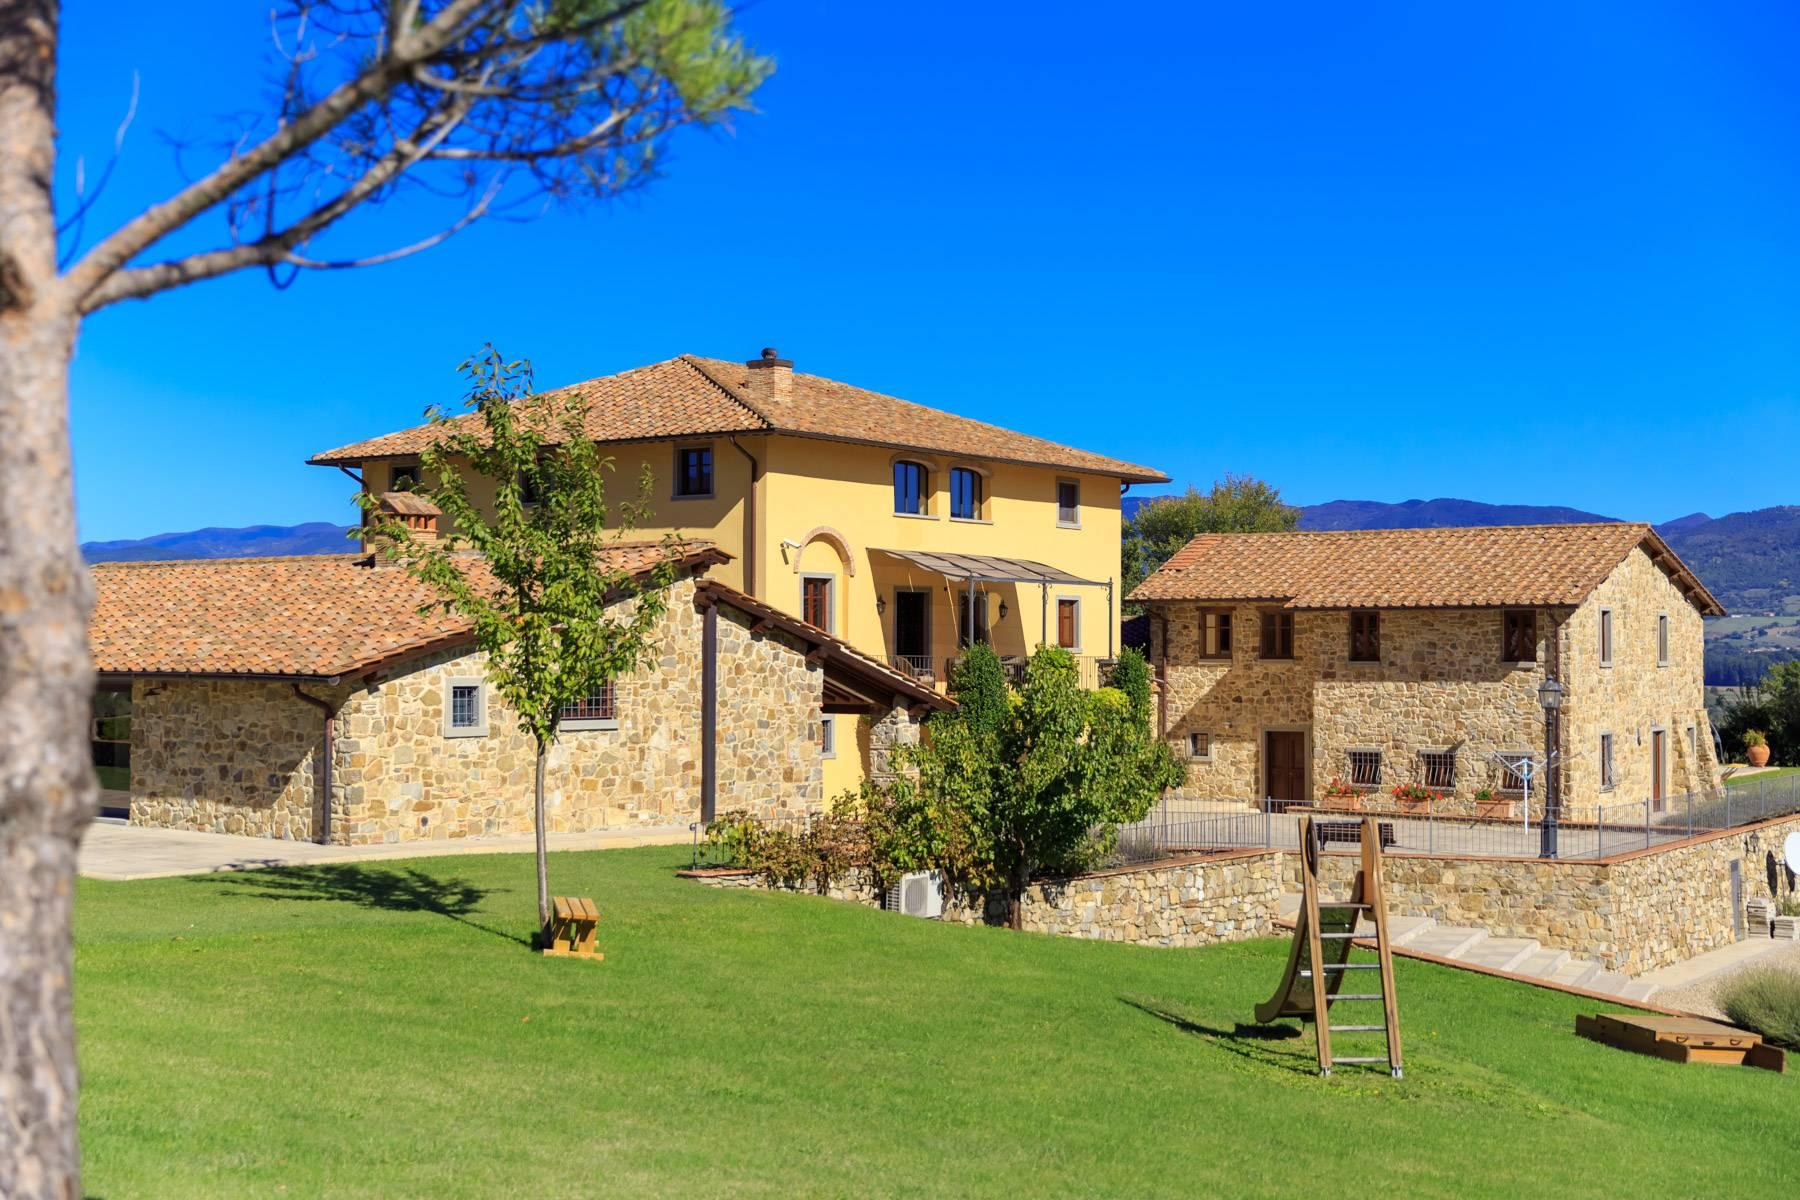 Marvelous estate with views over the Casentino valley - 5